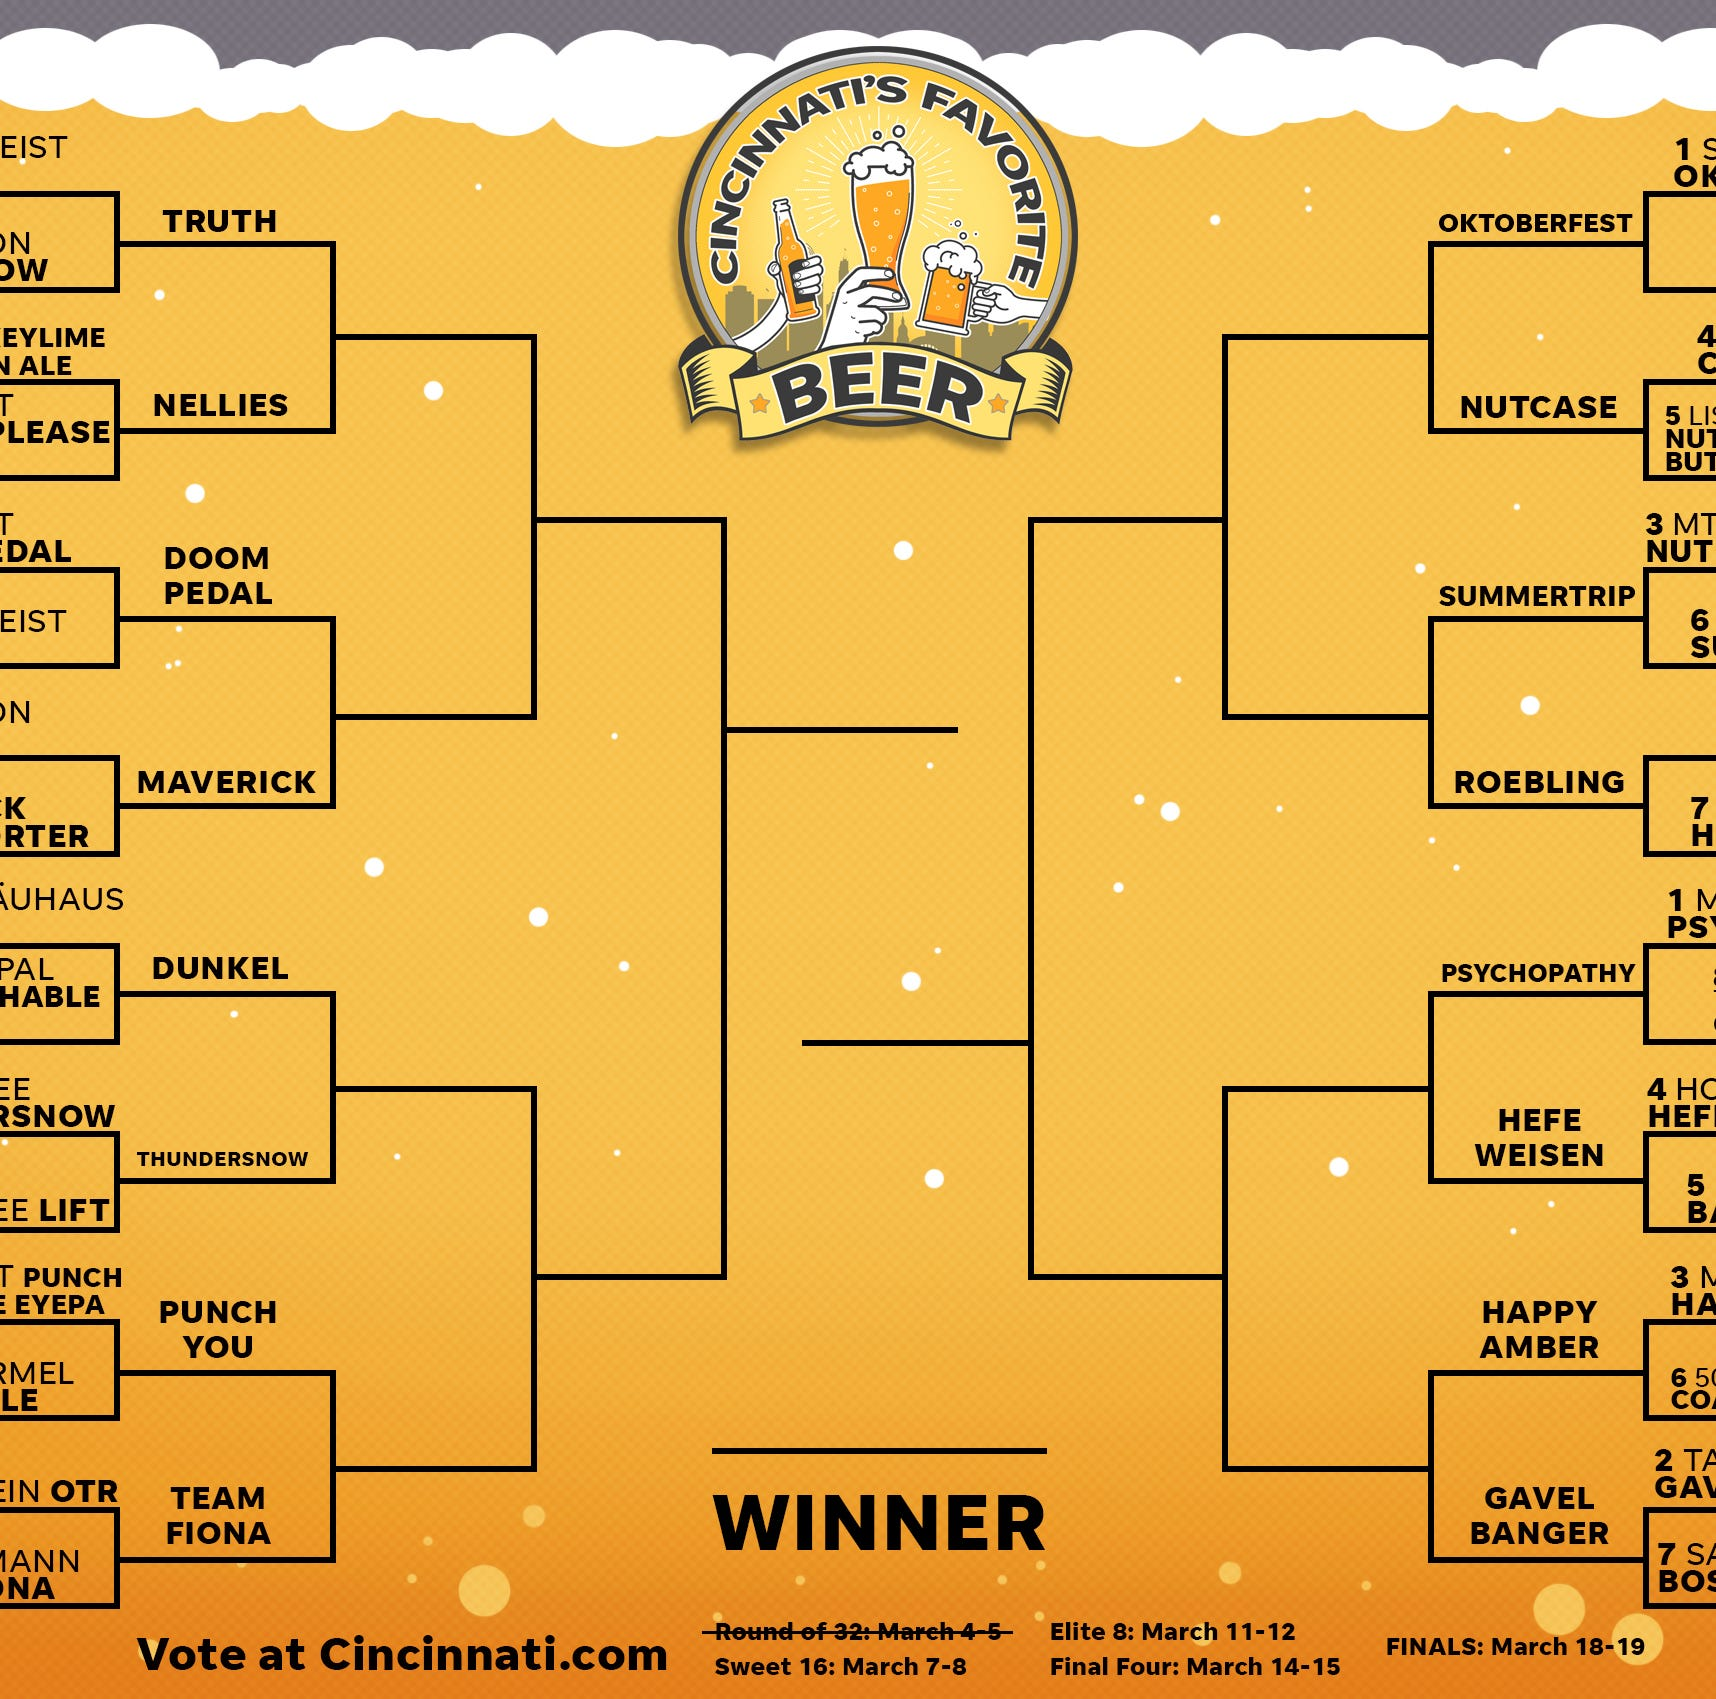 Beer bracket Sweet 16 closes Friday night, vote once per hour